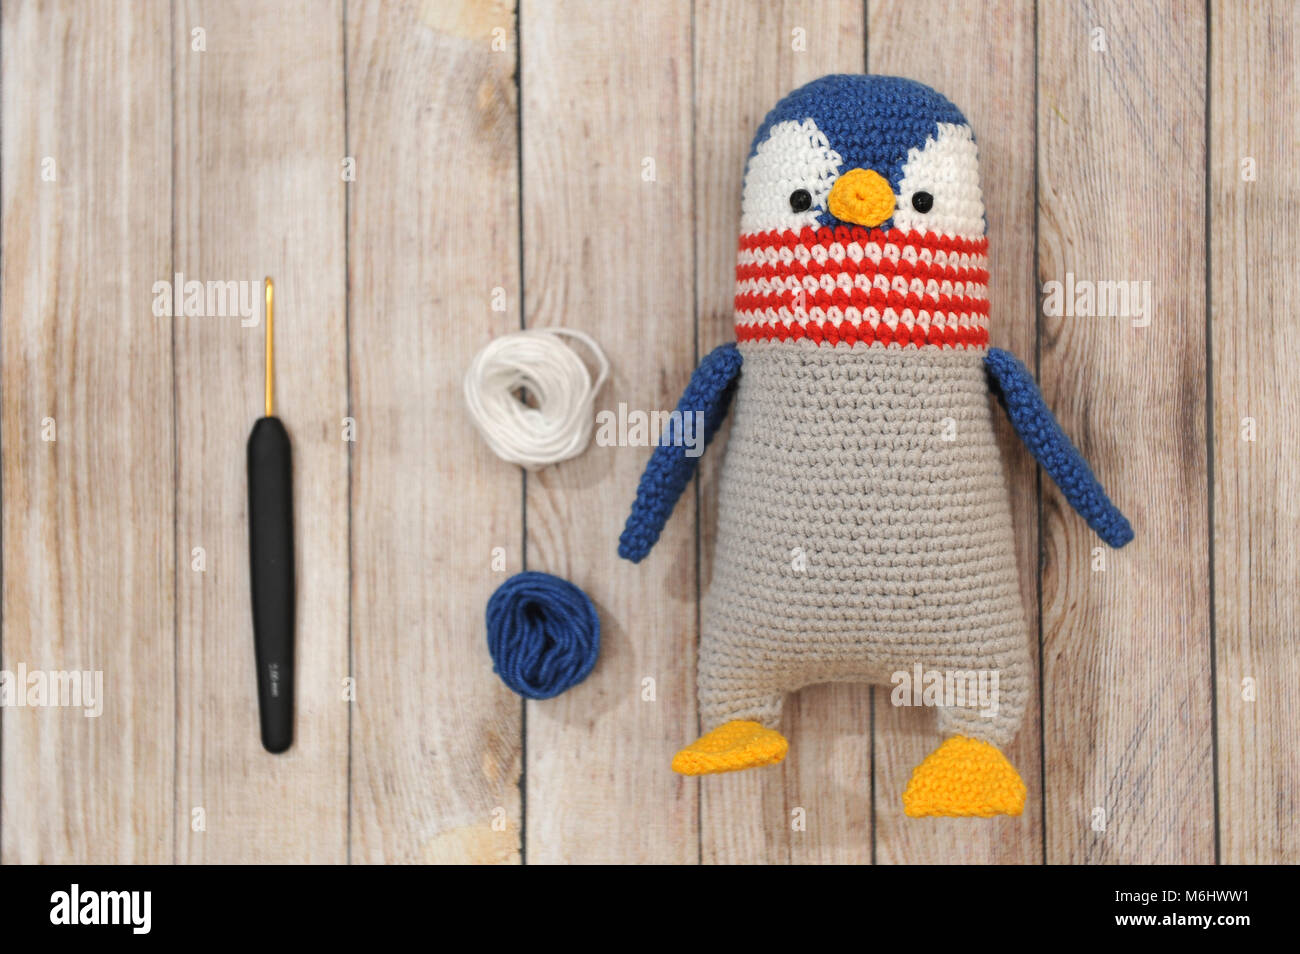 Penguin Soft Toy Stock Photos & Penguin Soft Toy Stock Images - Alamy